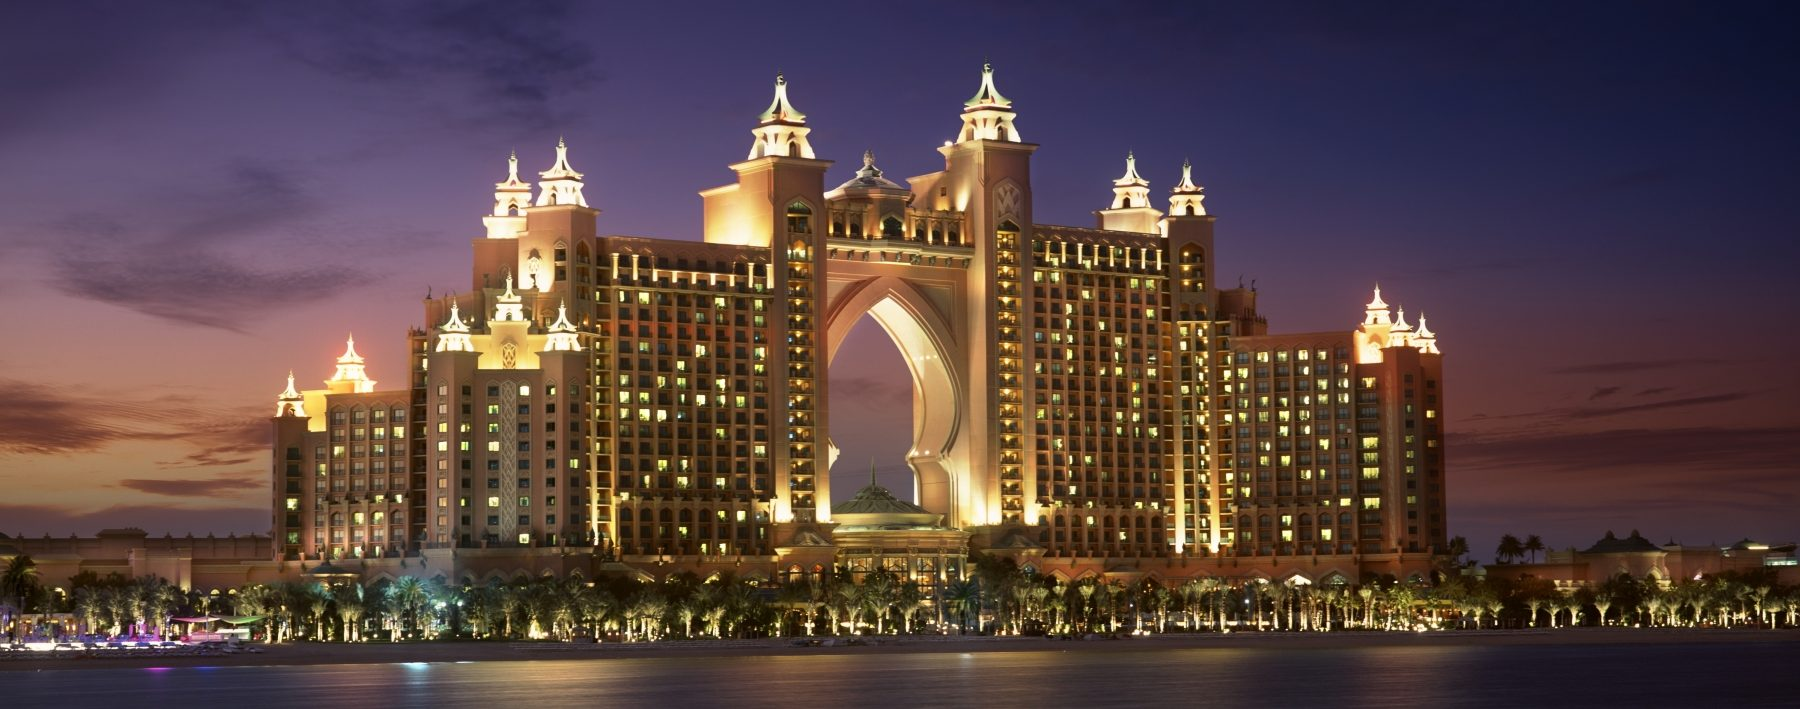 Exterior view of Atlantis The Palm at night in Dubai